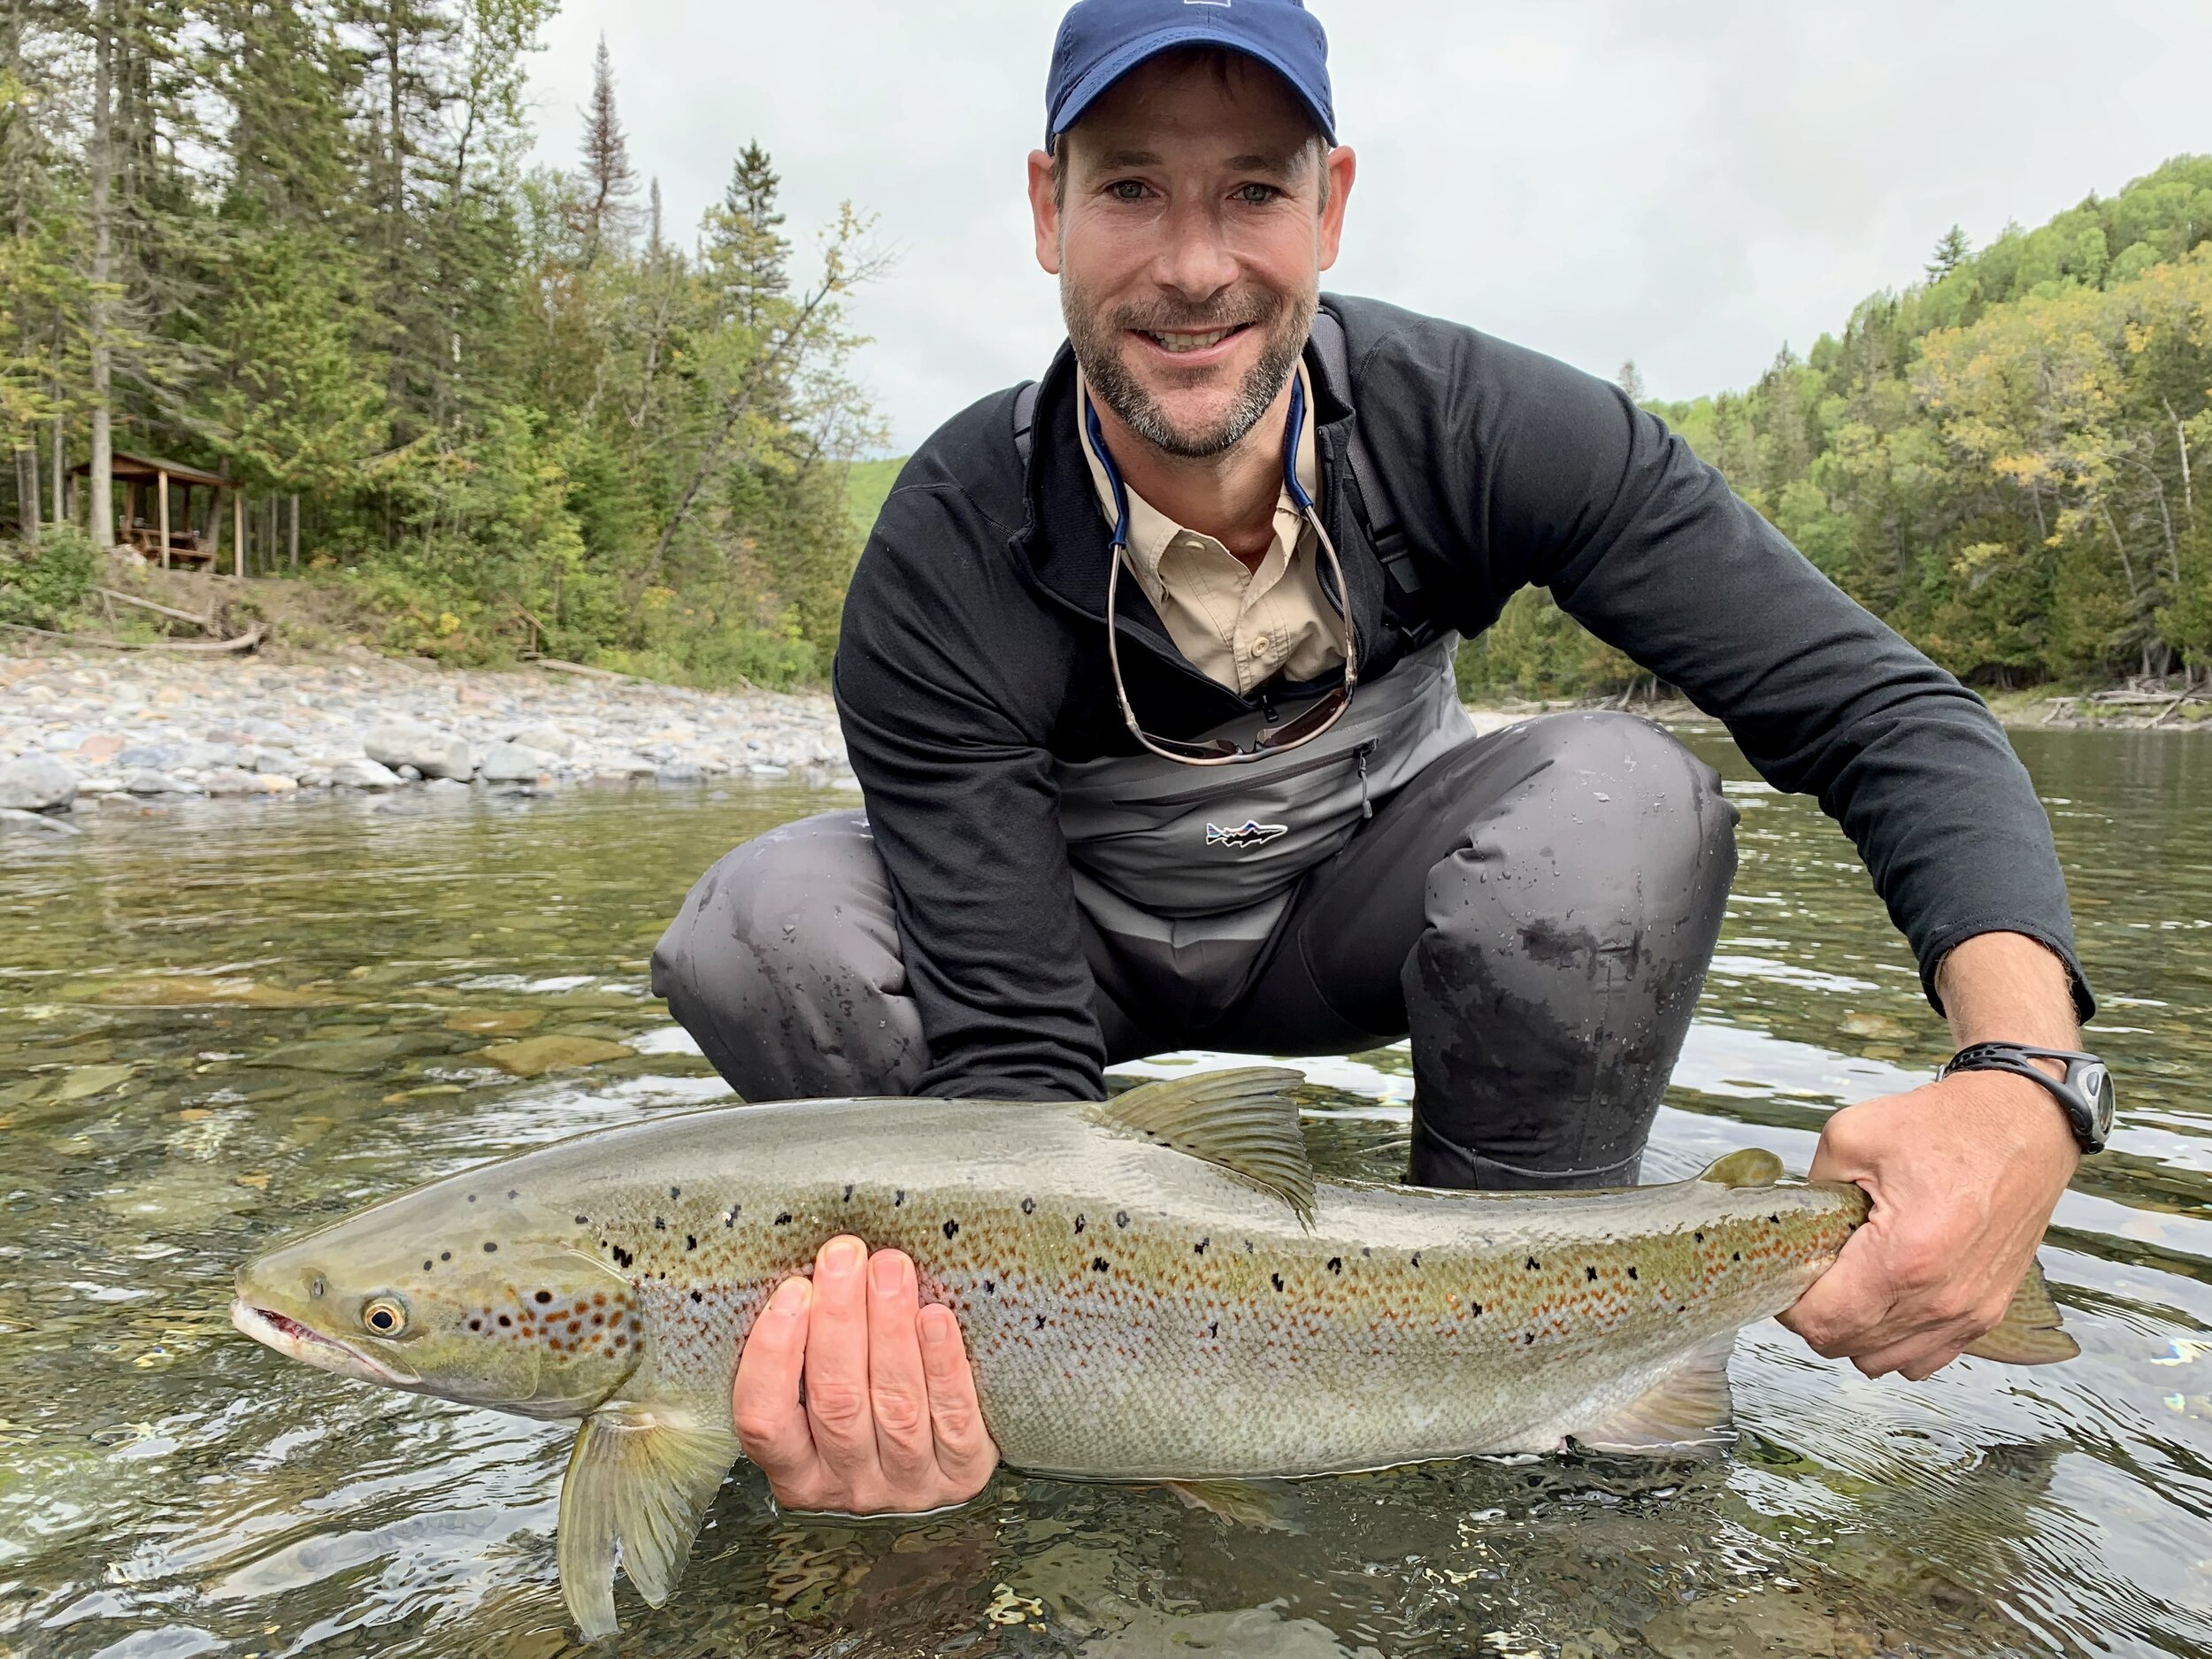 We welcomed Jamie Childs for the first time as our guest at Camp Bonaventure this week! Here he is with a beauty landed on the Bonaventure River! Nicely done Jamie!